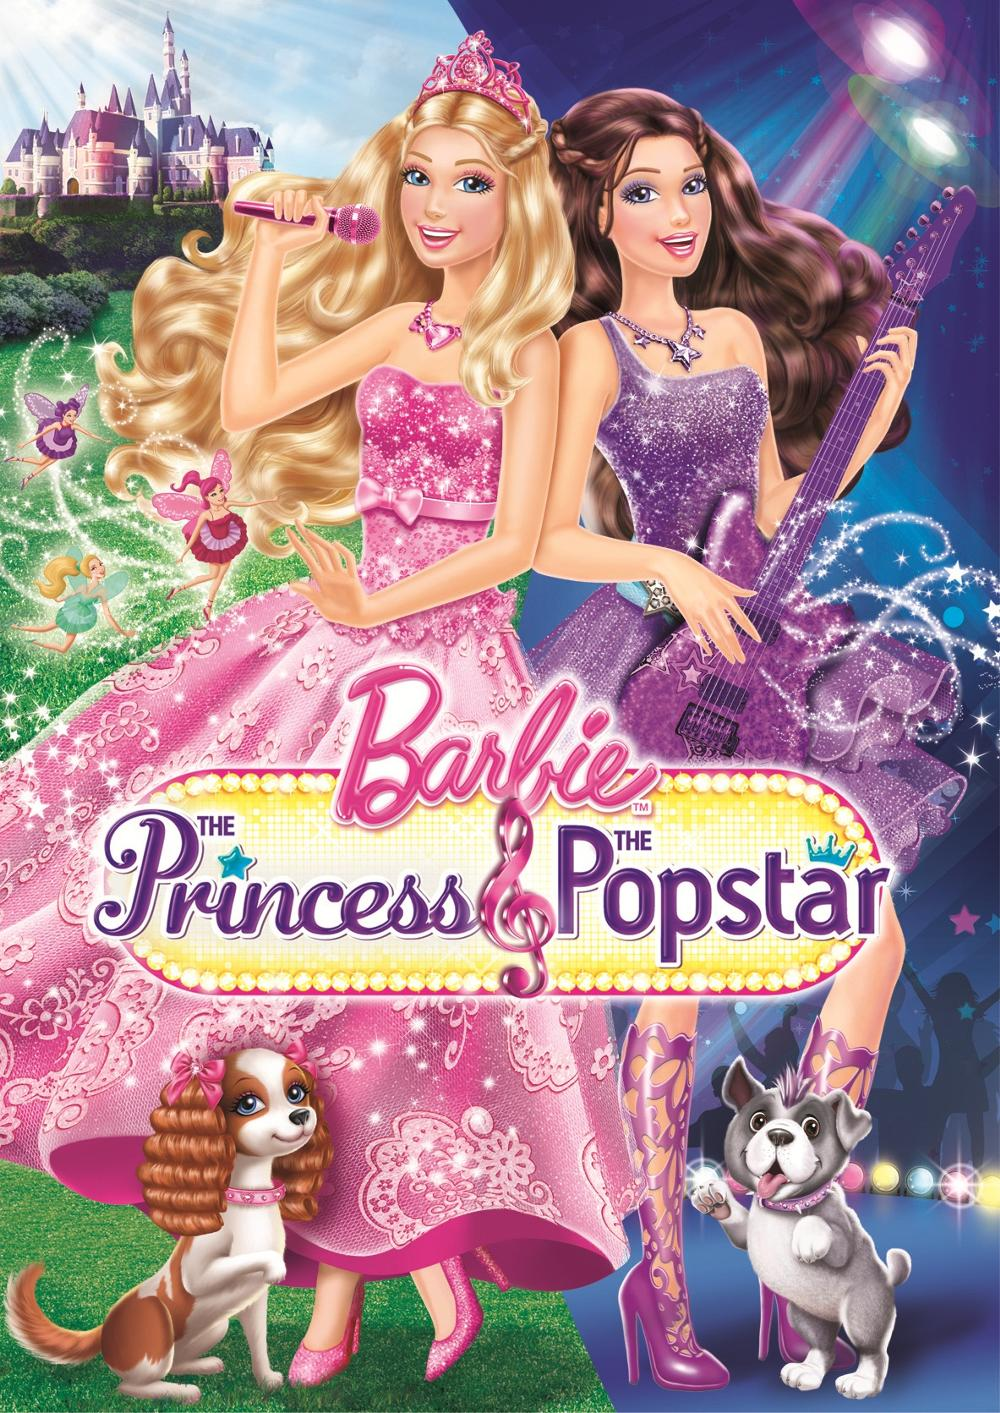 barbie and popstar